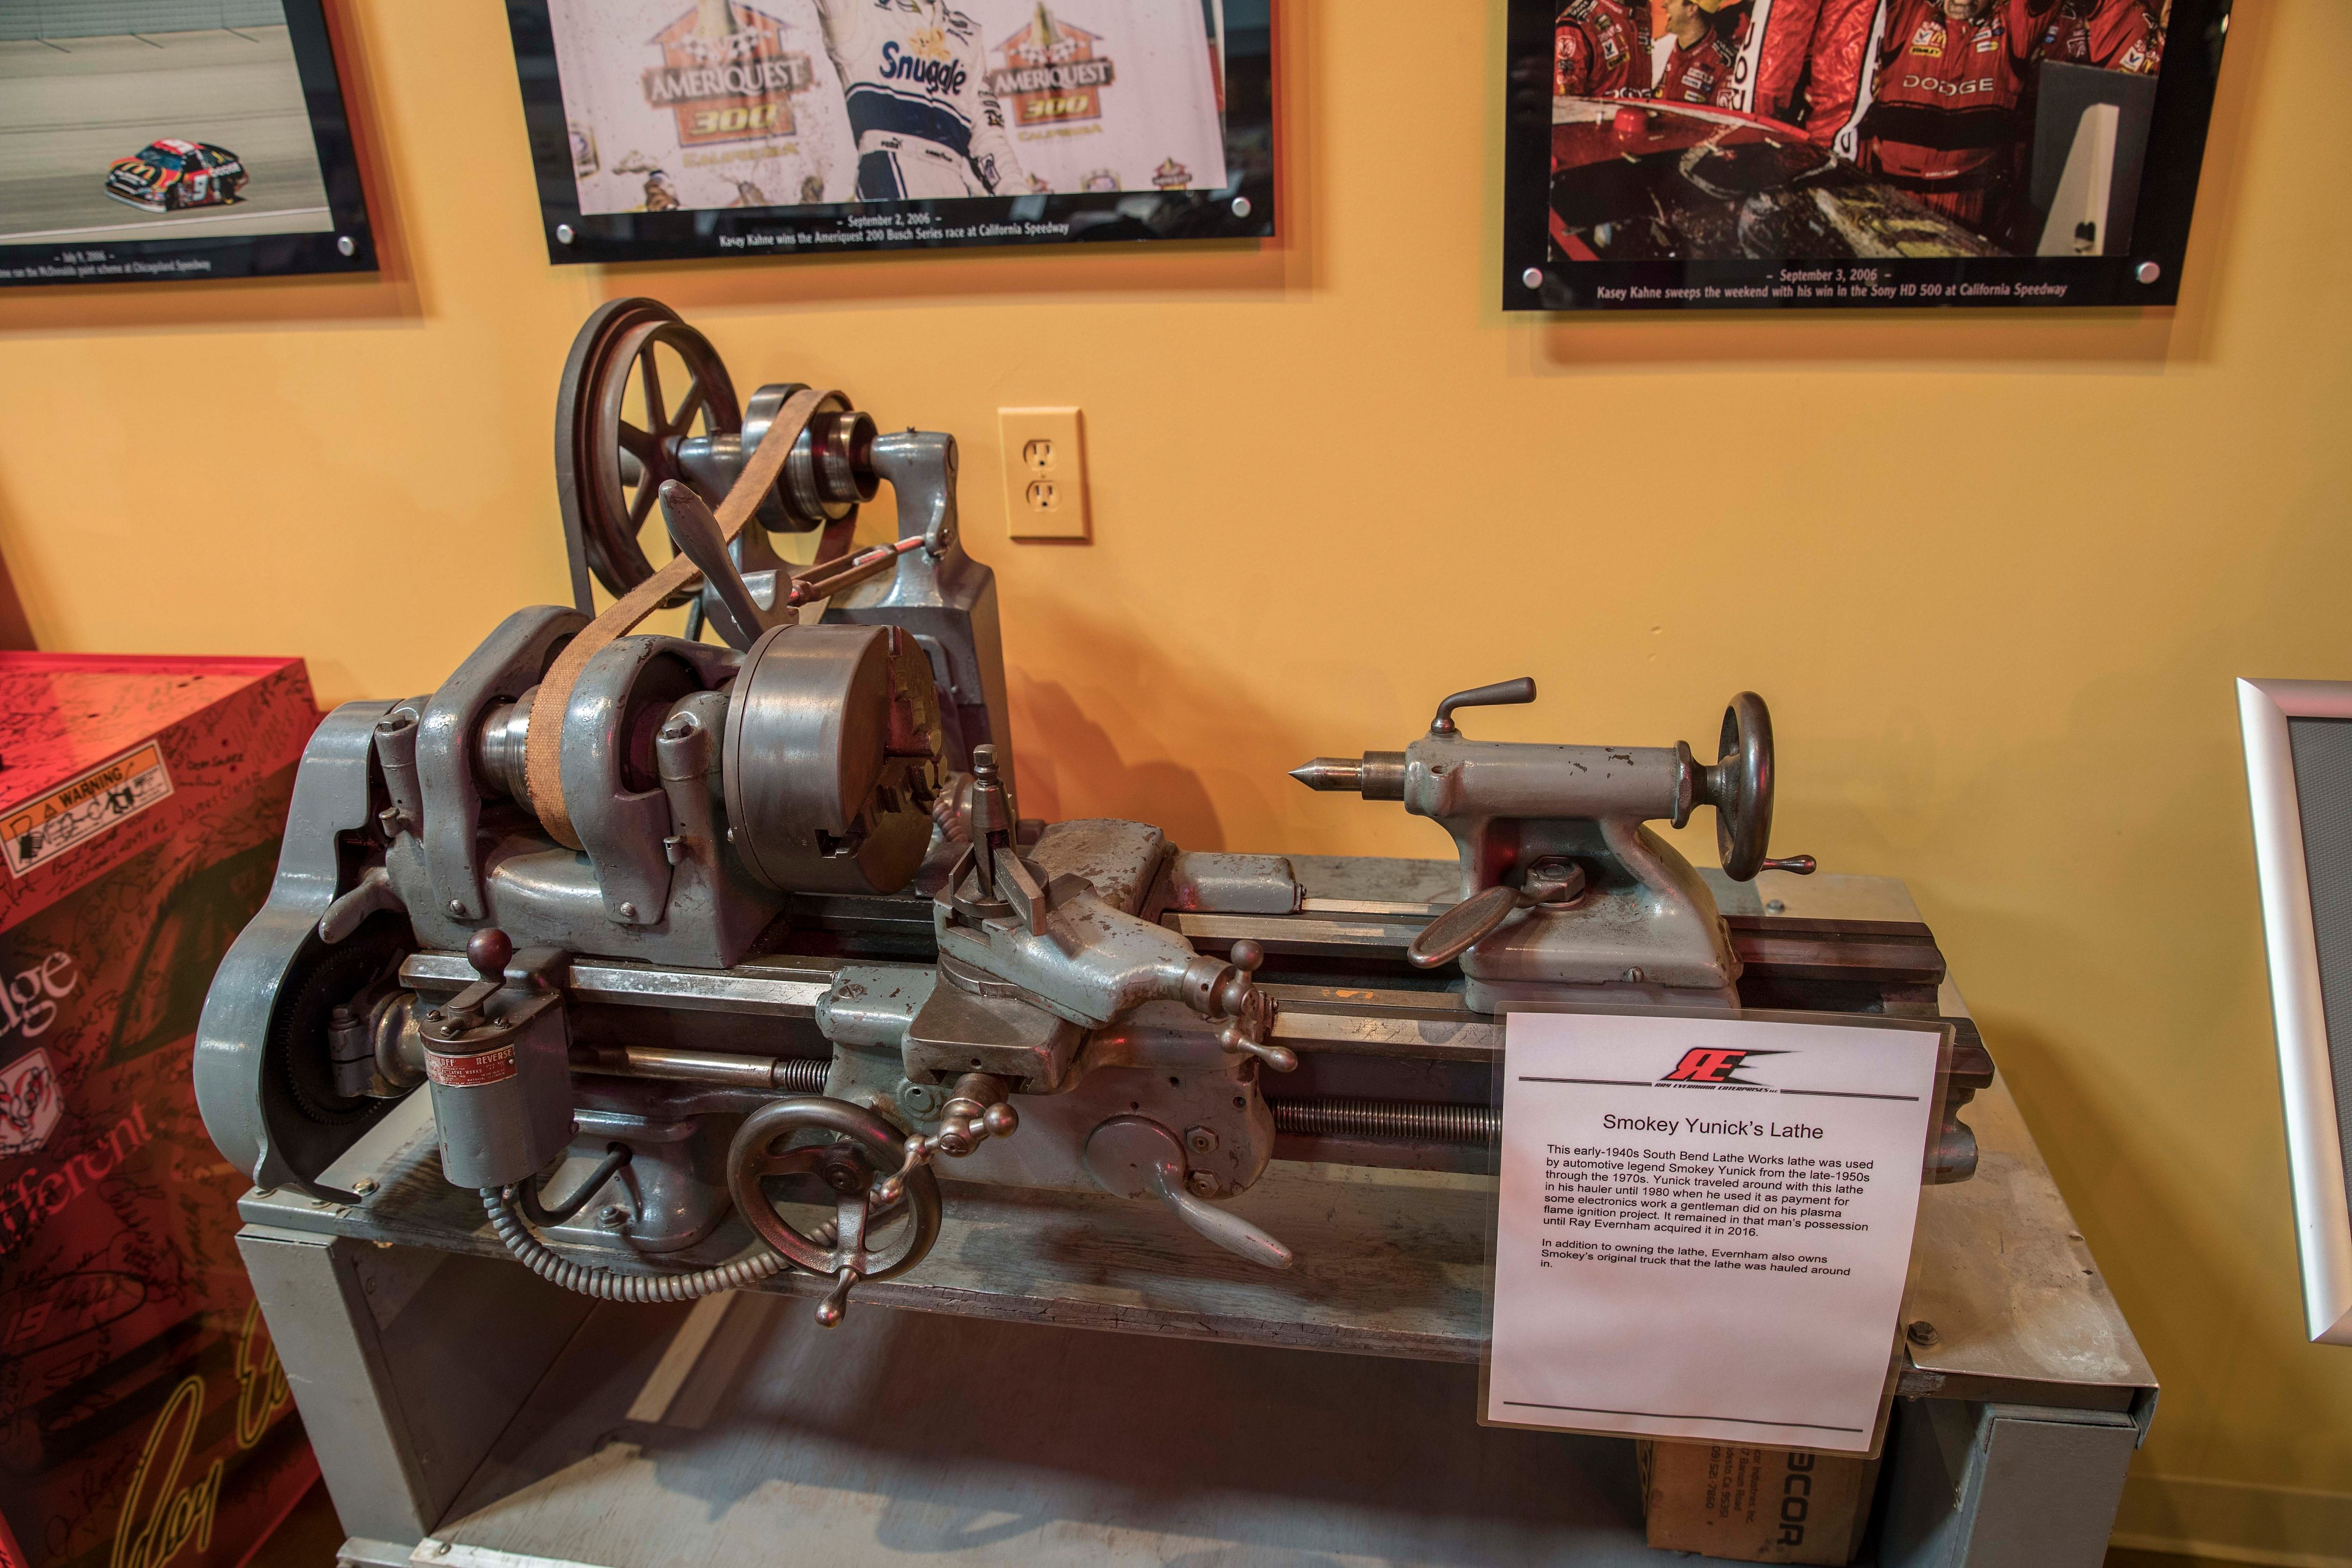 Smokey's South Bend lathe - from Ray Evernham's collection